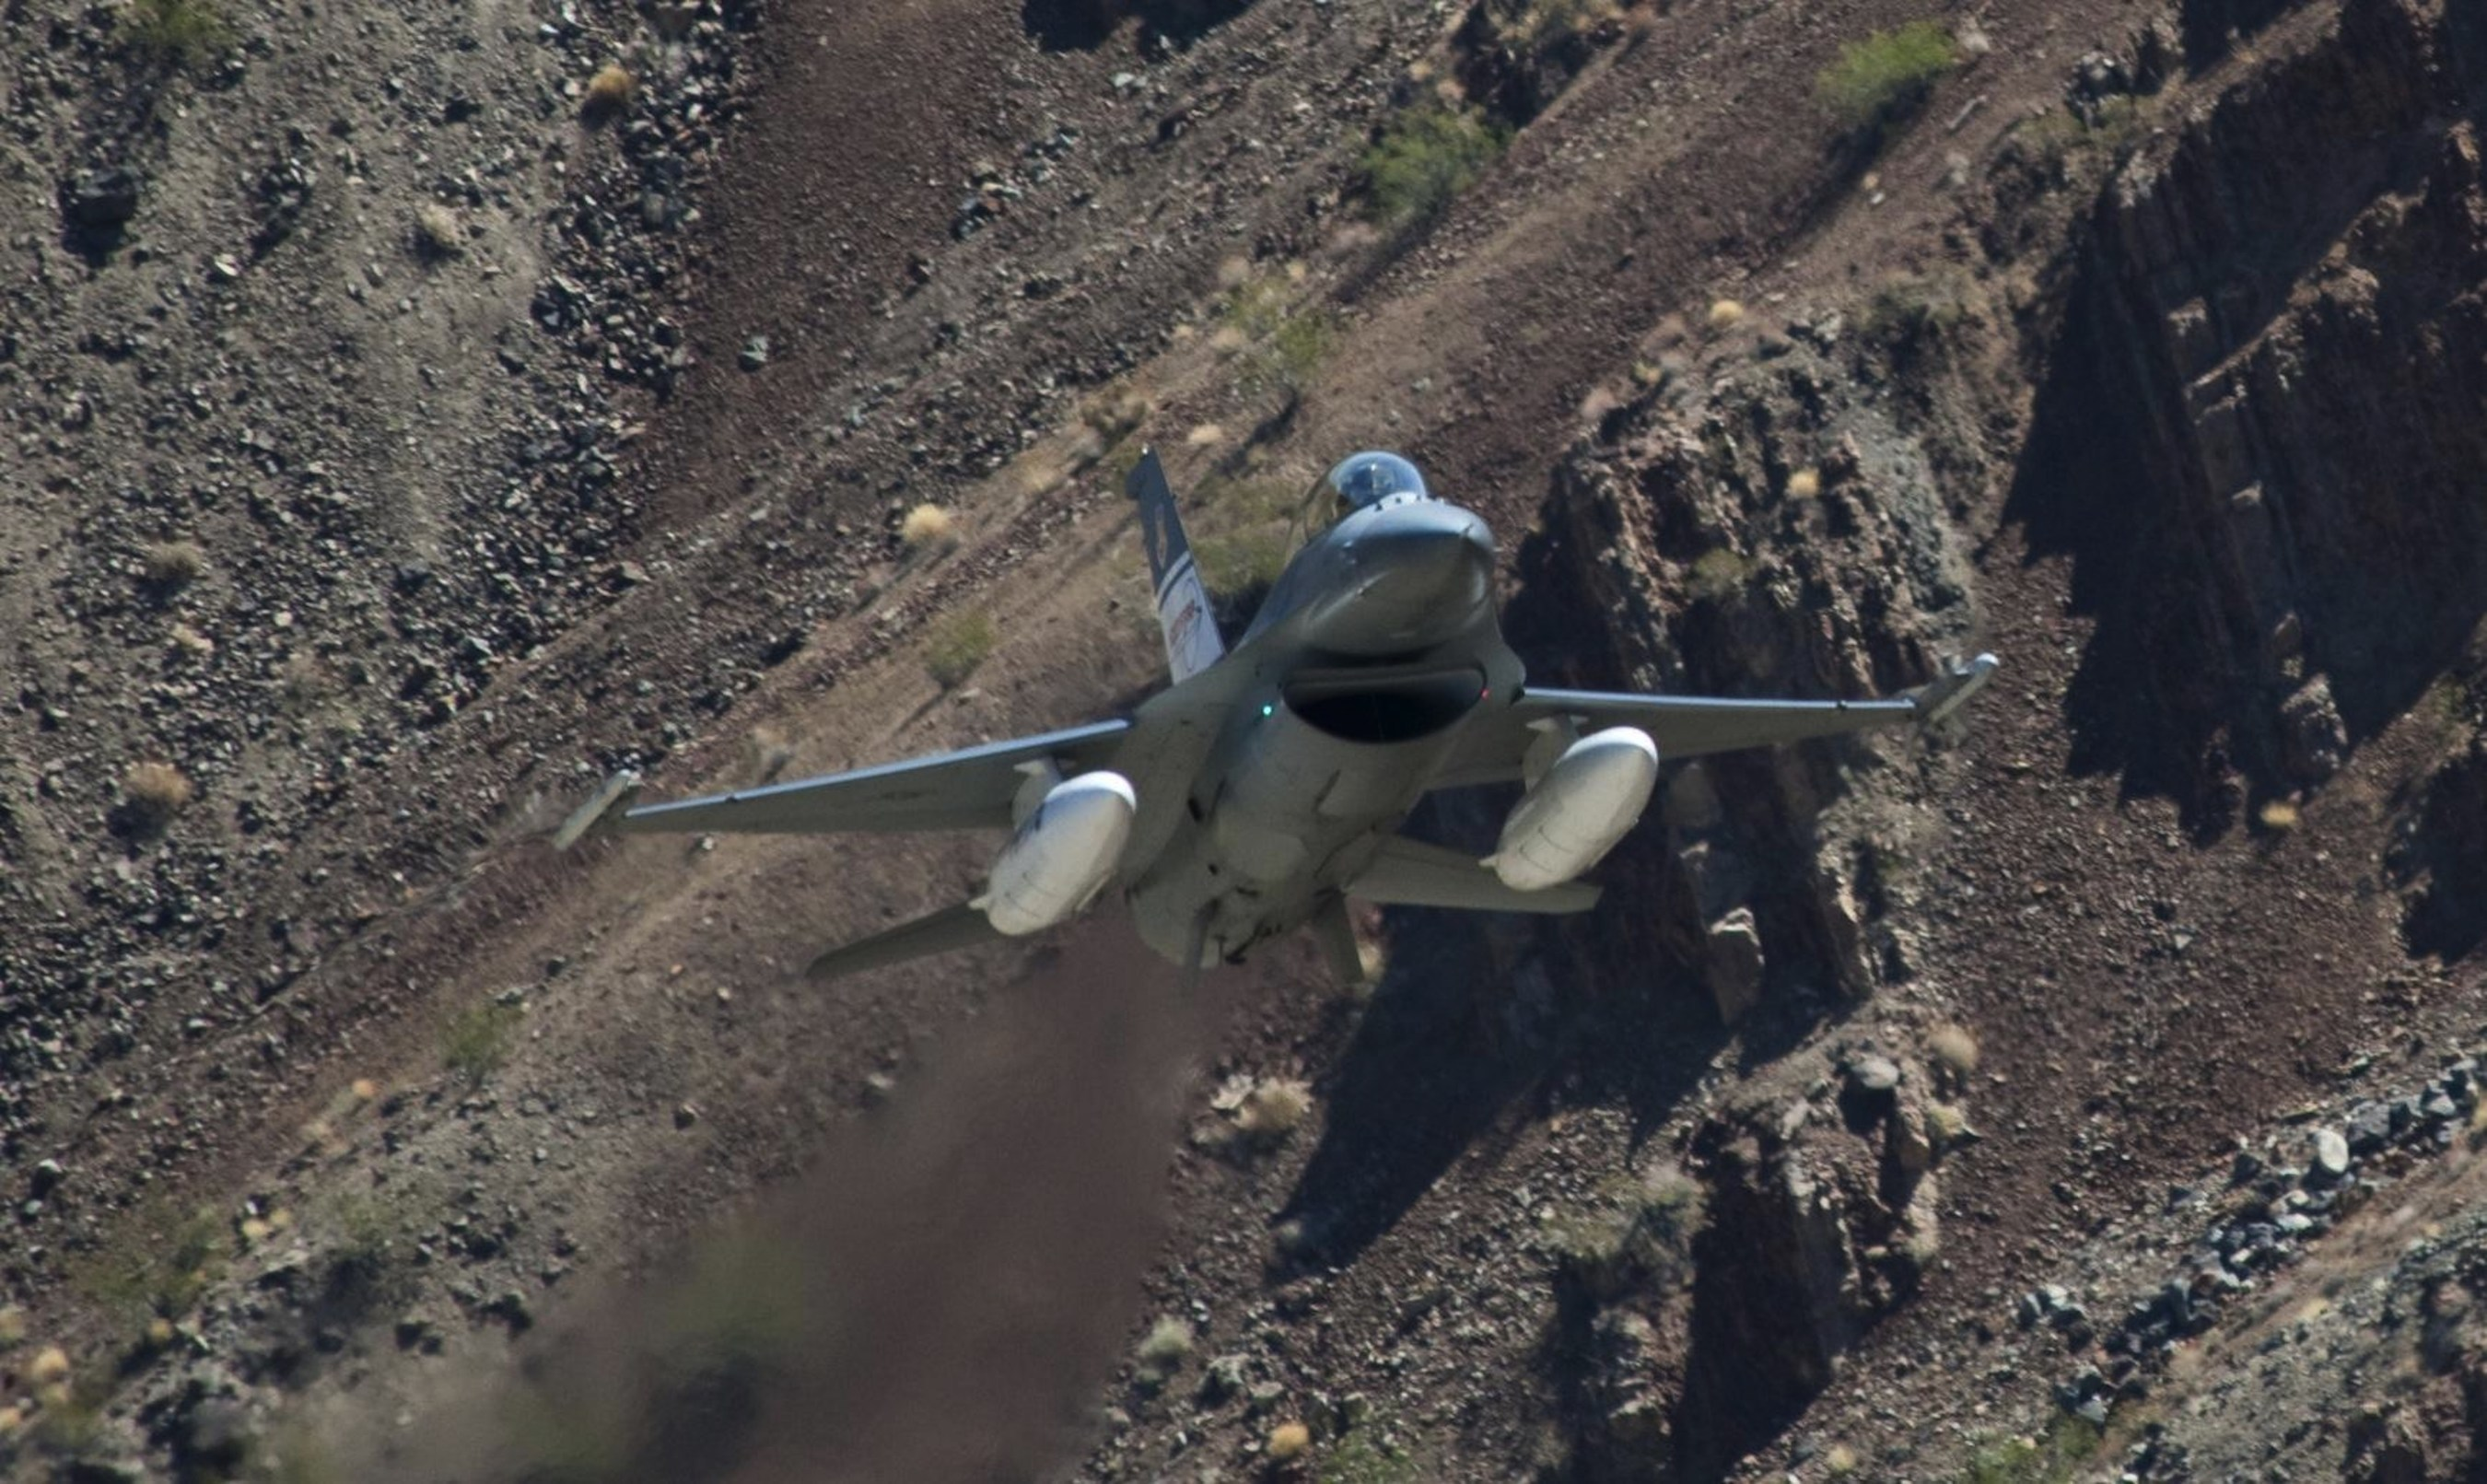 The Auto Ground Collision Avoidance System is flight tested on an F-16D at NASA's Dryden Flight Research Center in Palmdale, California. Photo: NASA